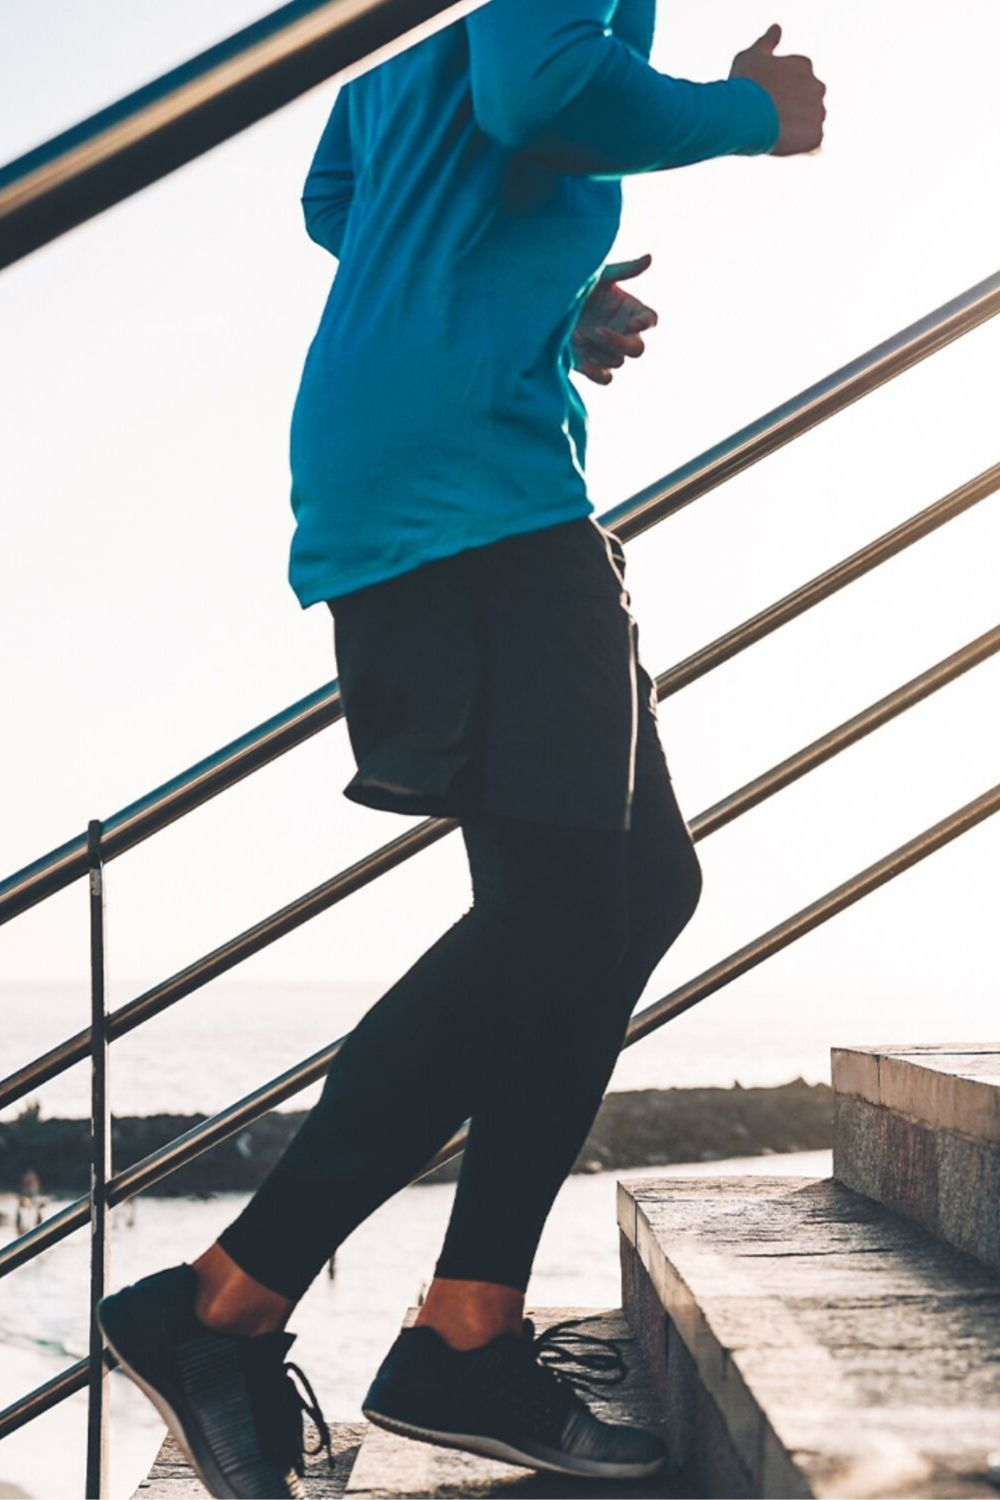 Running Exercise 🏃🏃♀️ Cycle to work, Running workouts